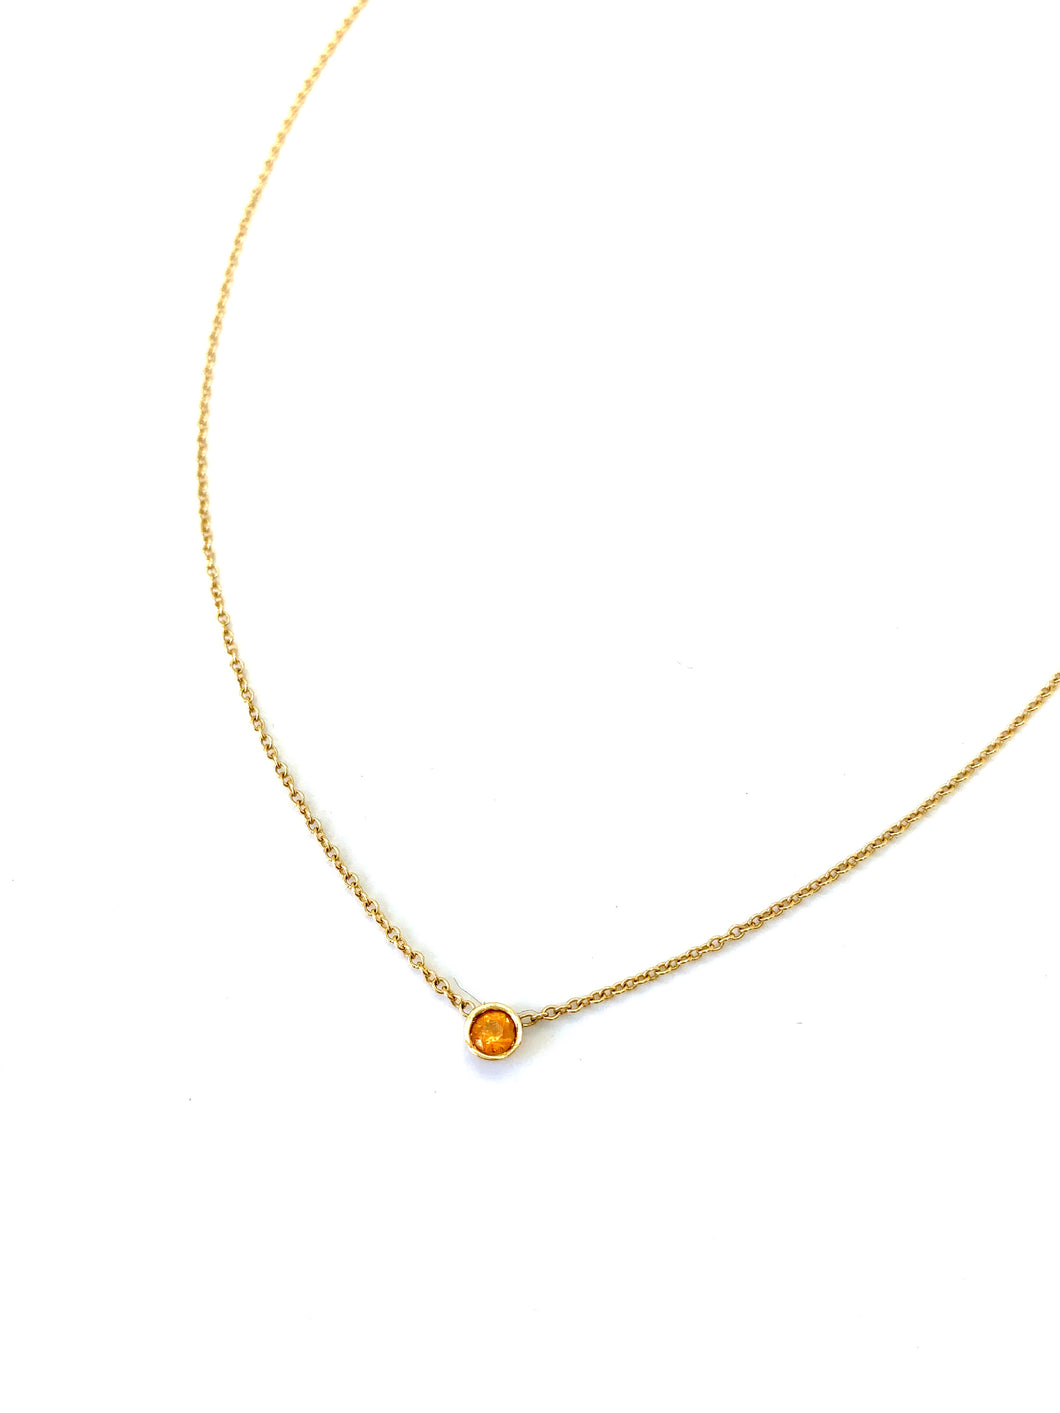 Materials include a 16-inch 14k yellow gold chain w/ a 3mm orange sapphire gemstone